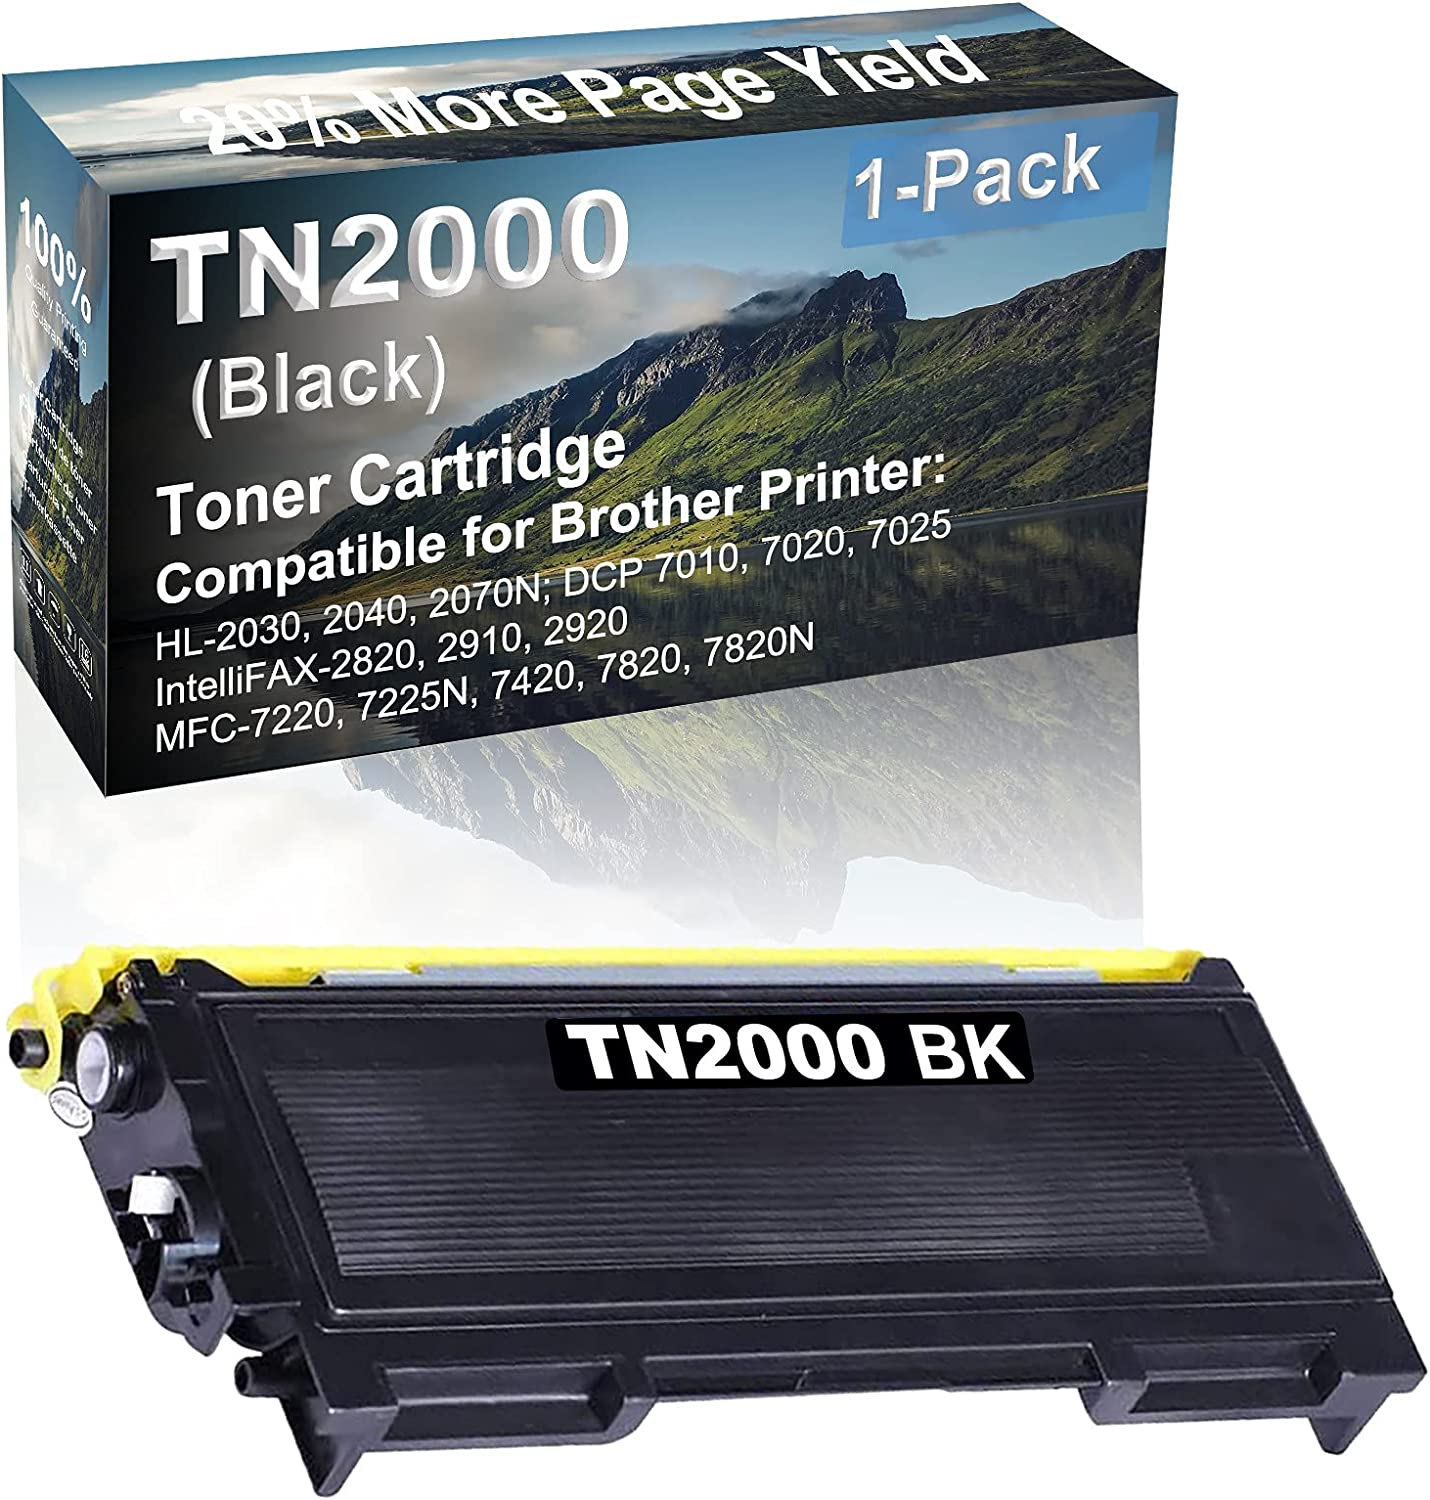 1-Pack Compatible High Capacity TN2000 Toner Cartridge use for Brother HL-2030, 2040, 2070N; DCP 7010, 7020, 7025 Printer (Black)